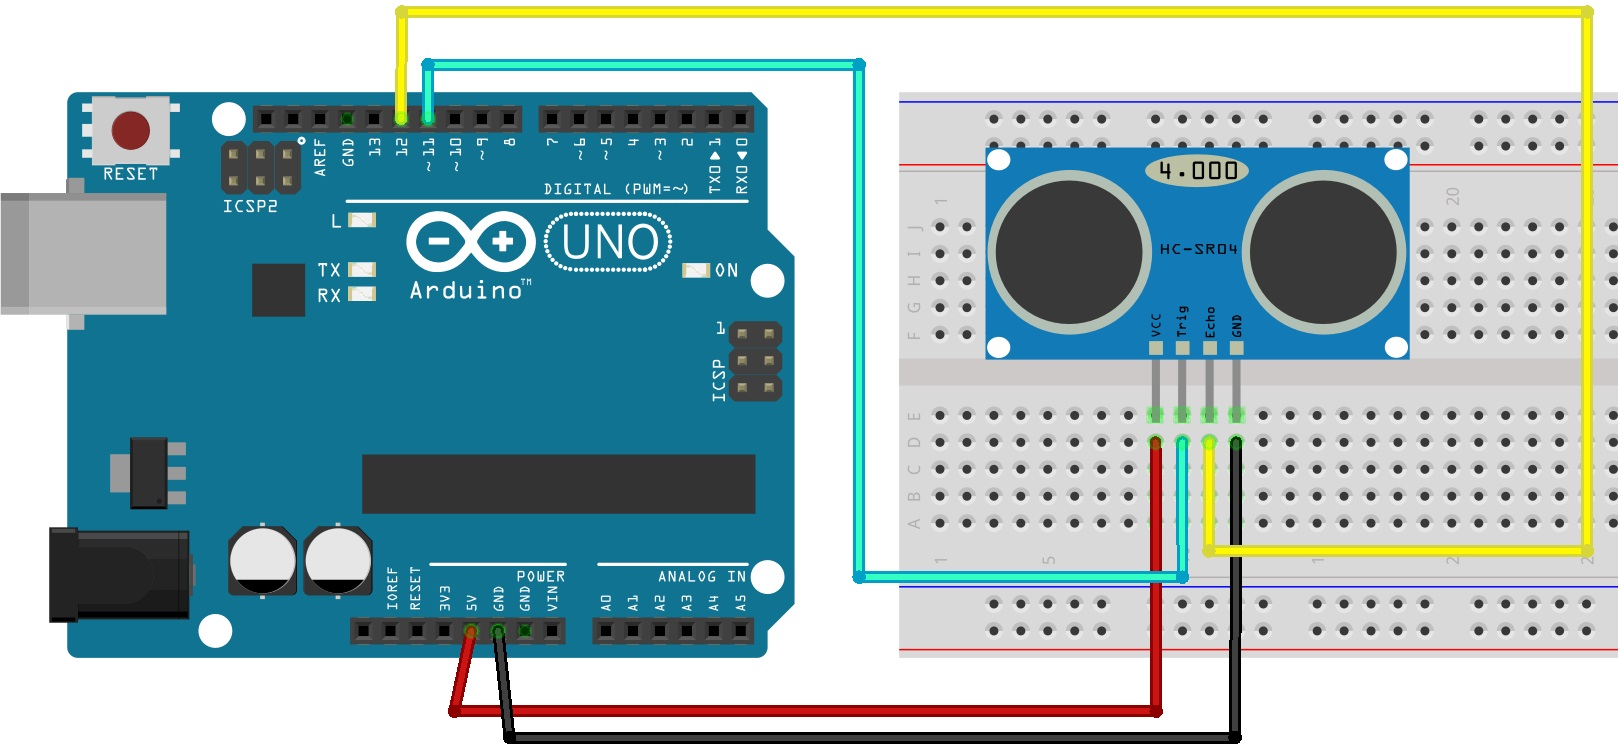 how to build simple onewire touch detector circuit diagram we  complete guide for ultrasonic sensor hc sr04 with arduino random how to build simple onewire touch detector circuit diagram